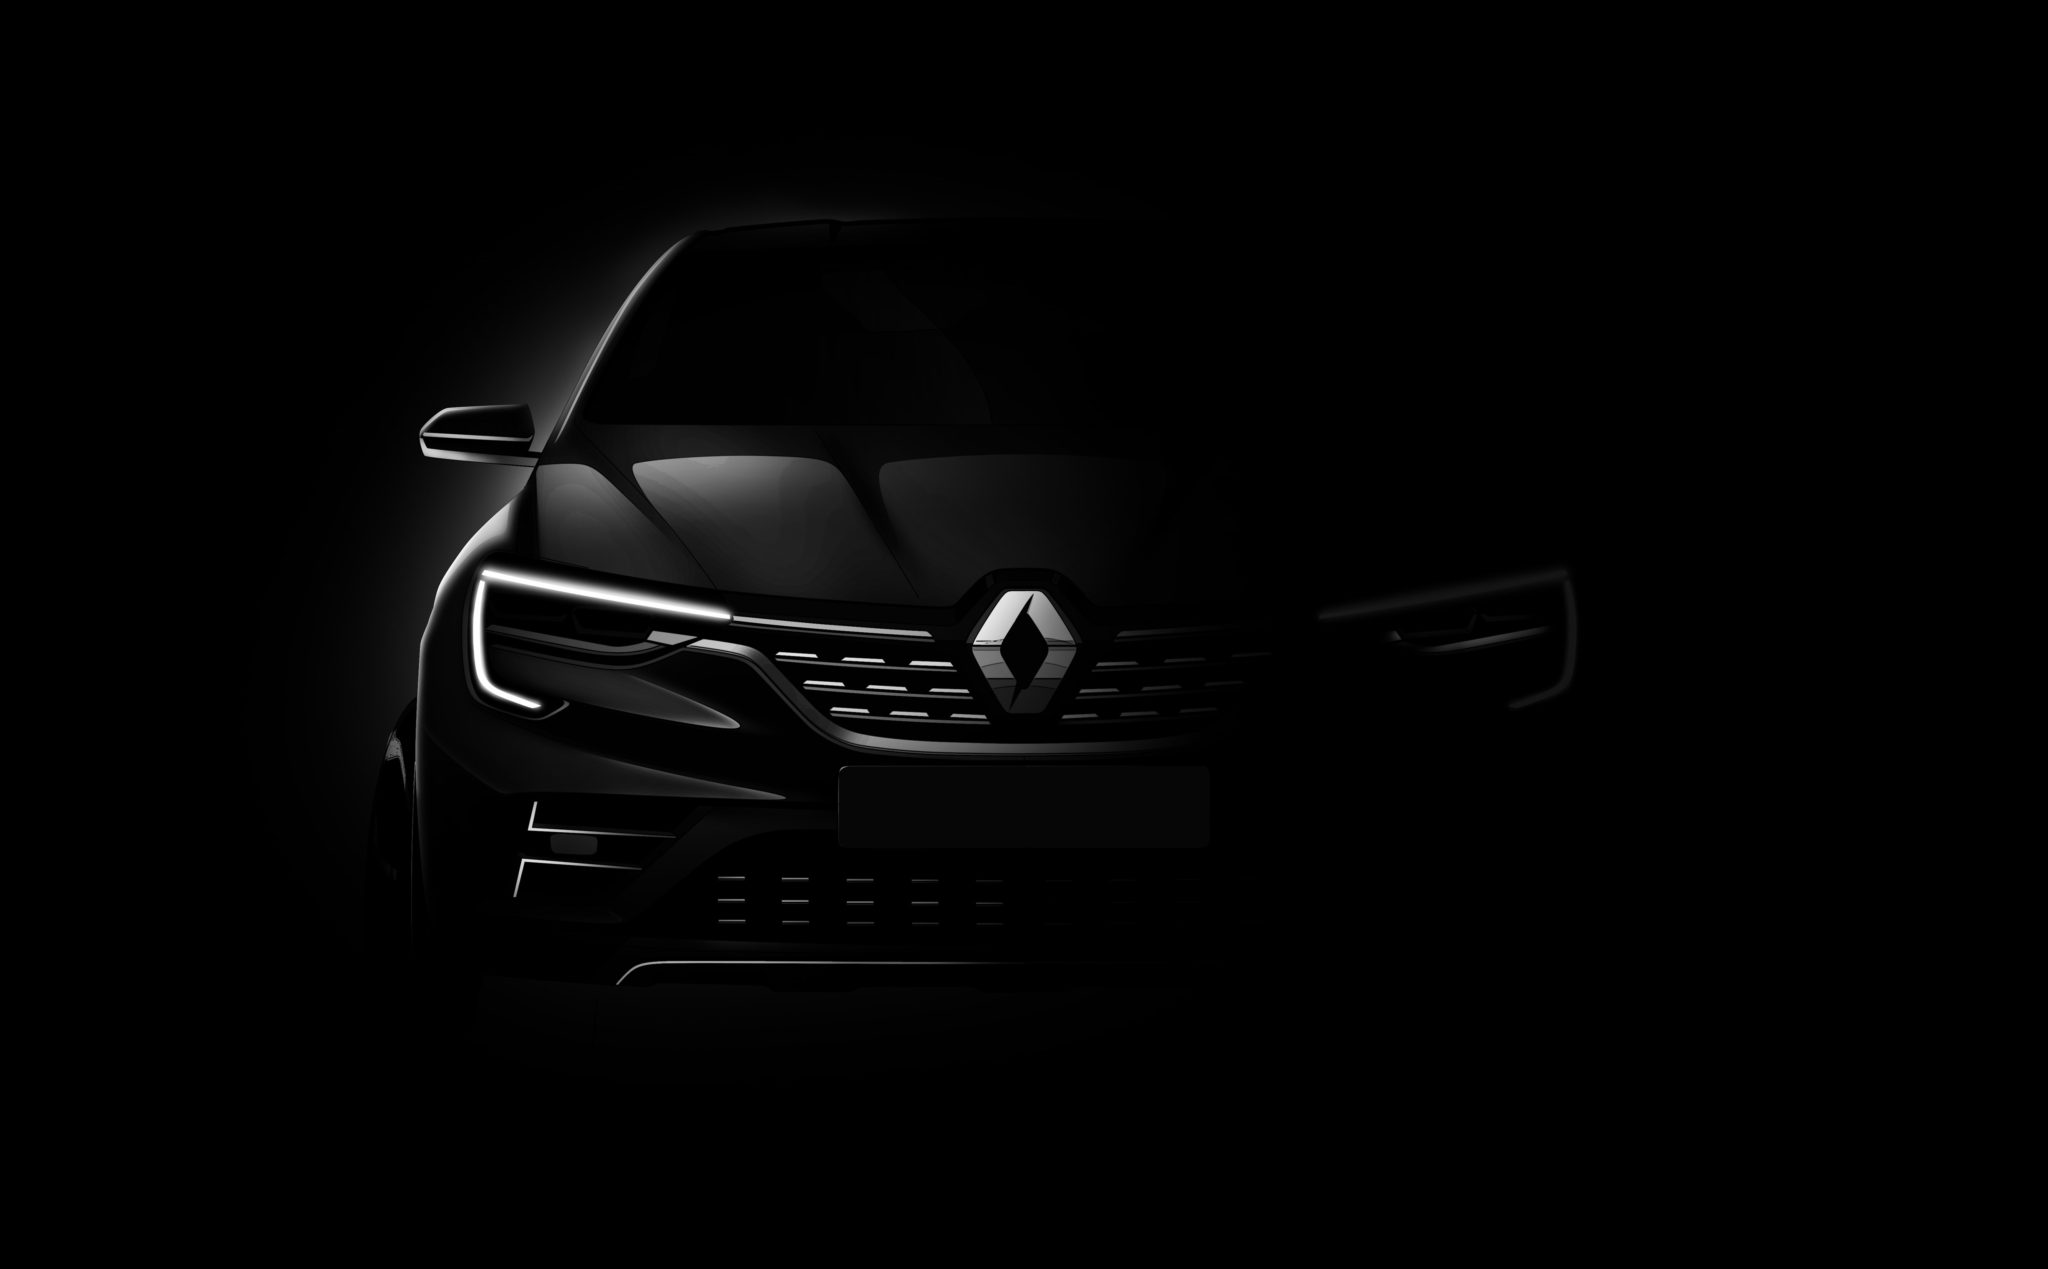 NEW RENAULT CROSSOVER TO BE REVEALED AT 2018 MOSCOW INTERNATIONAL MOTOR SHOW